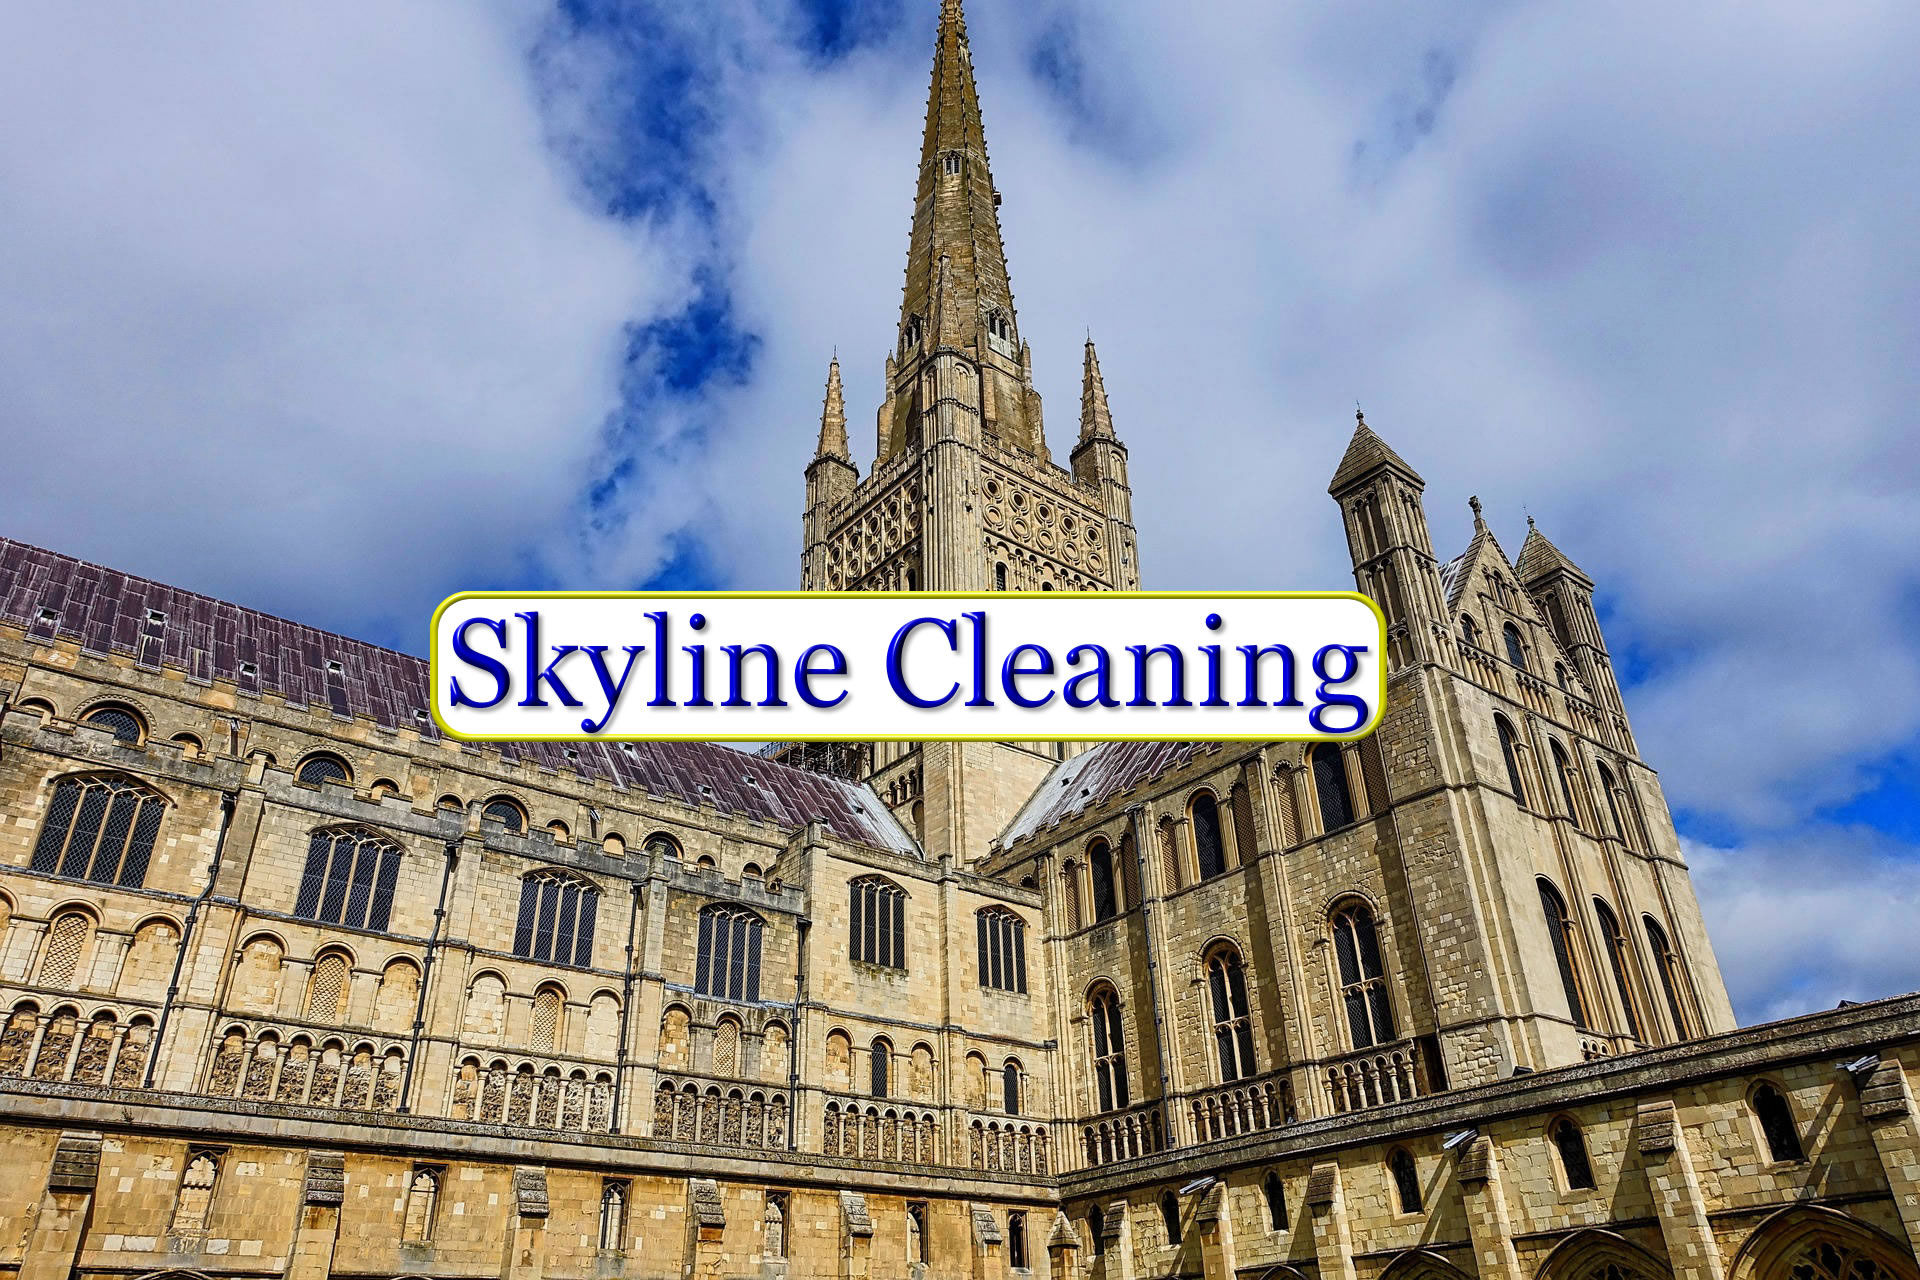 Skyline Cleaning